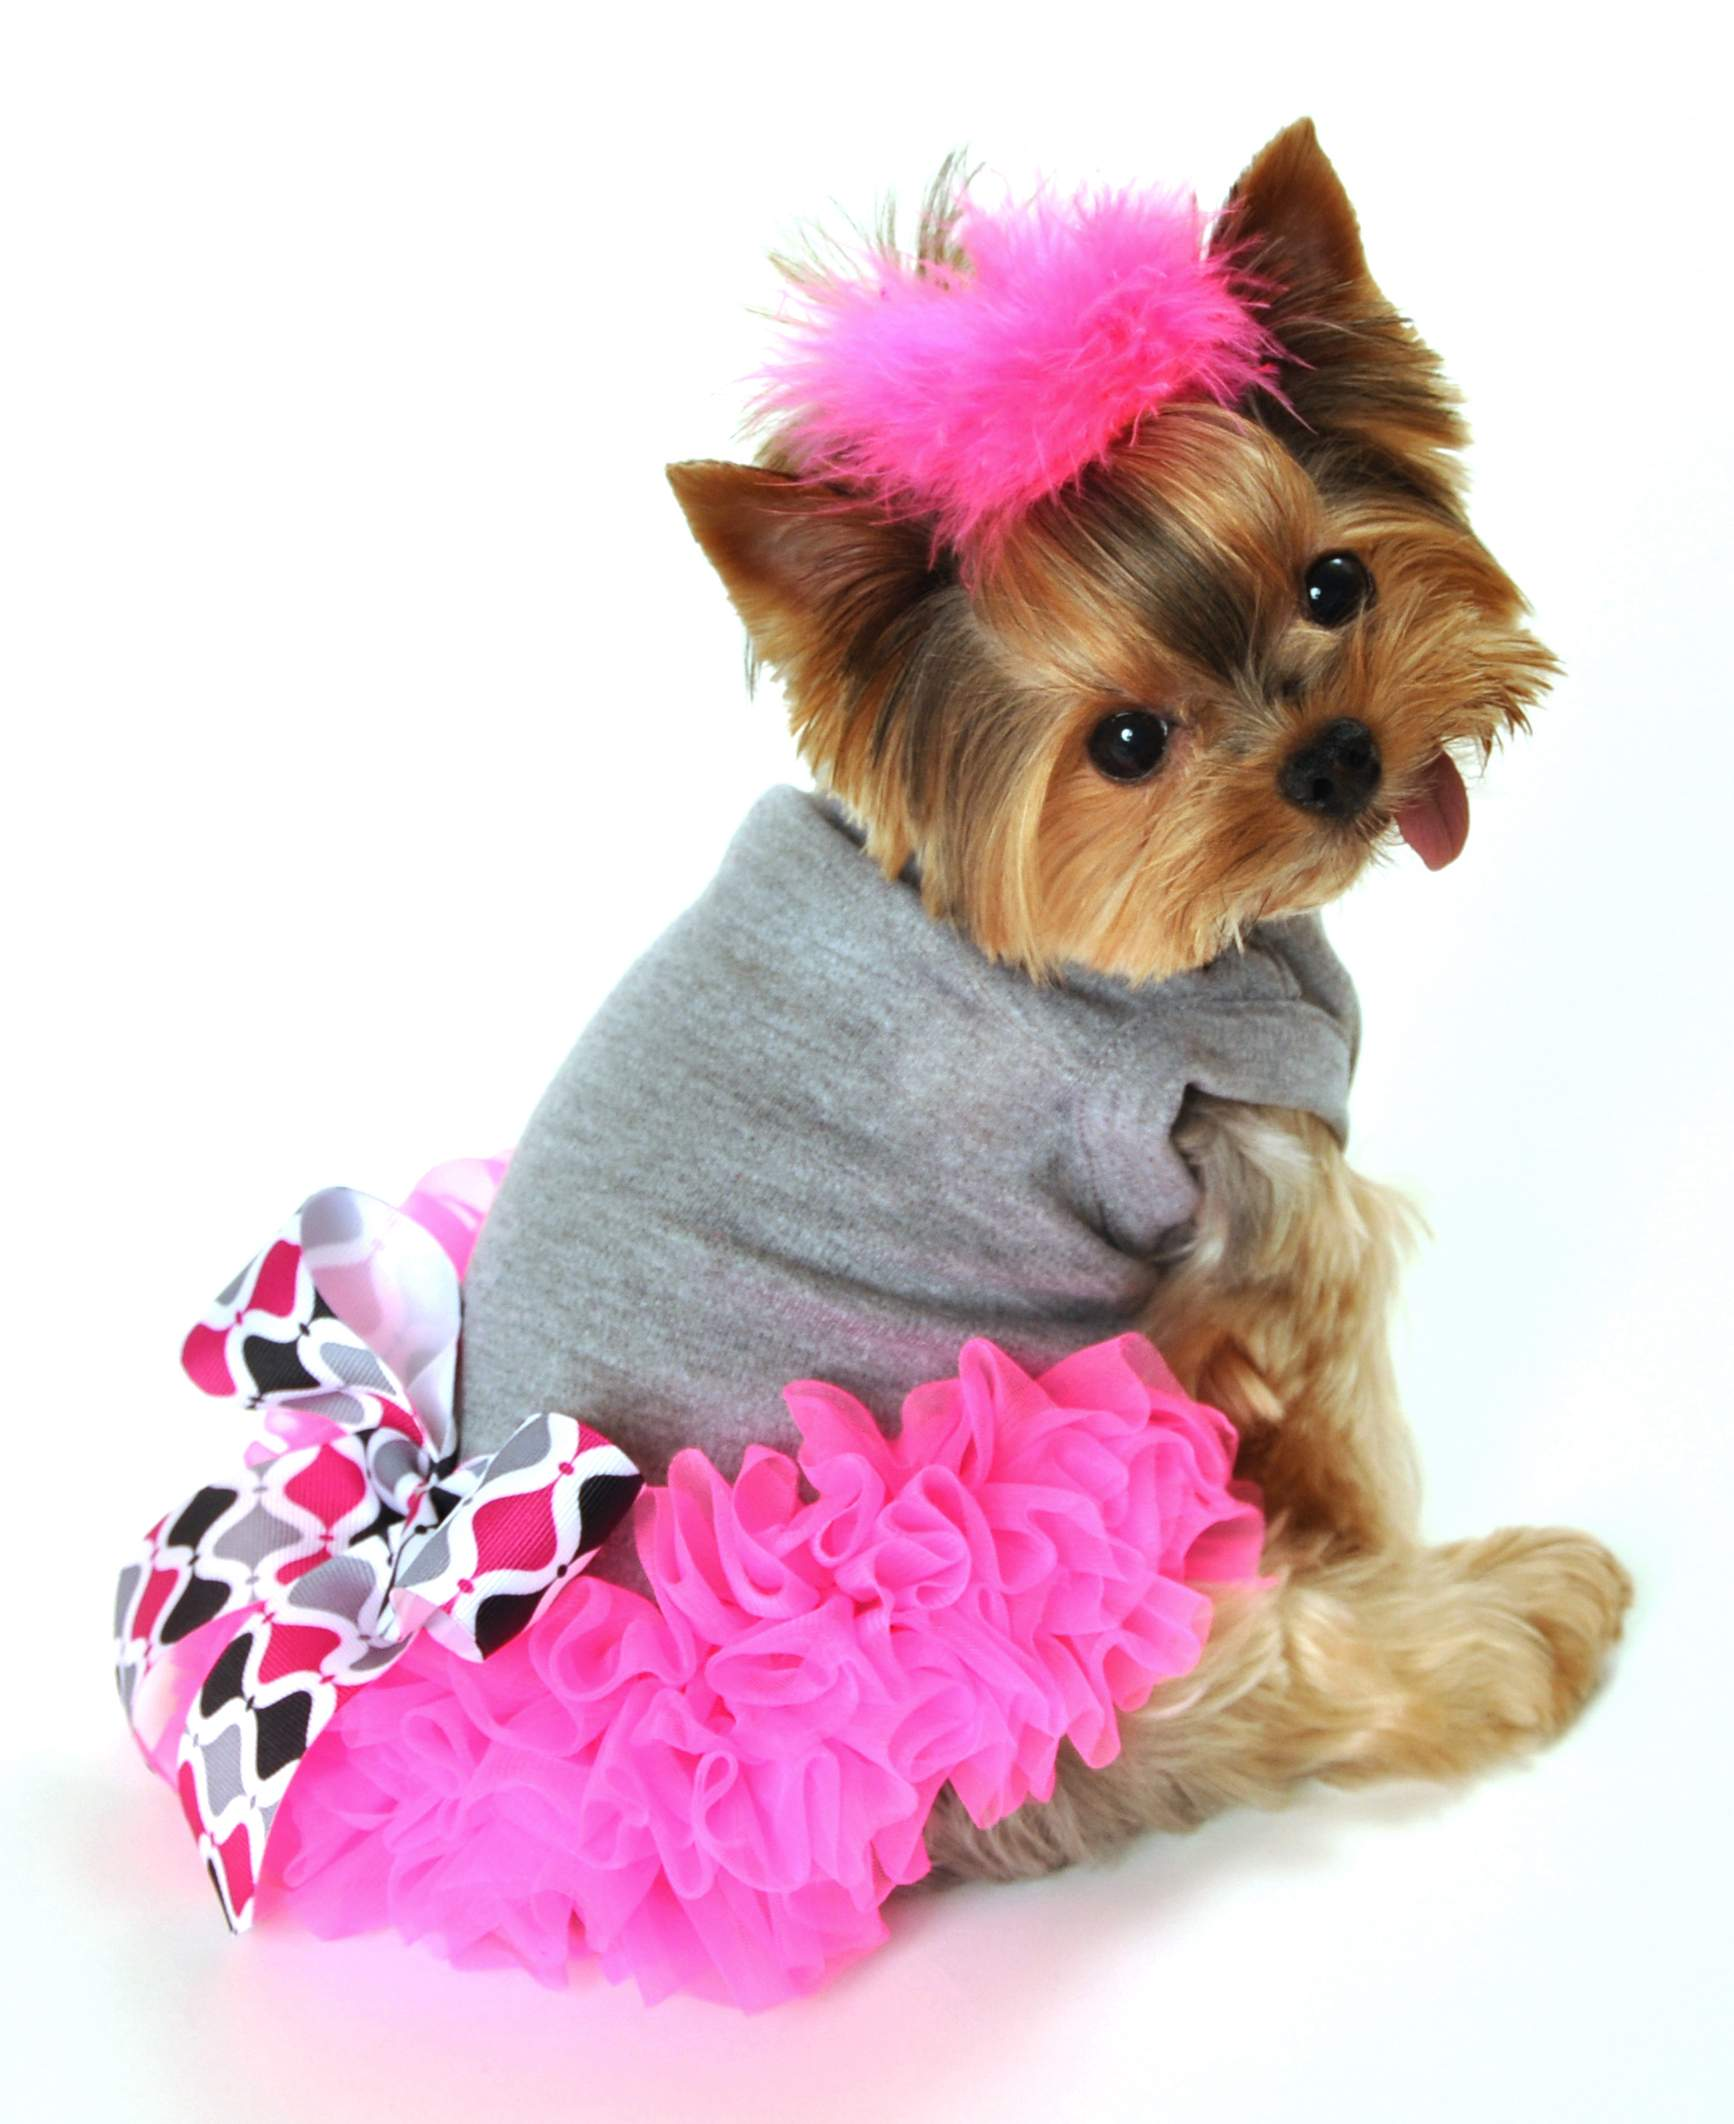 Dog In A Dress photo - 1